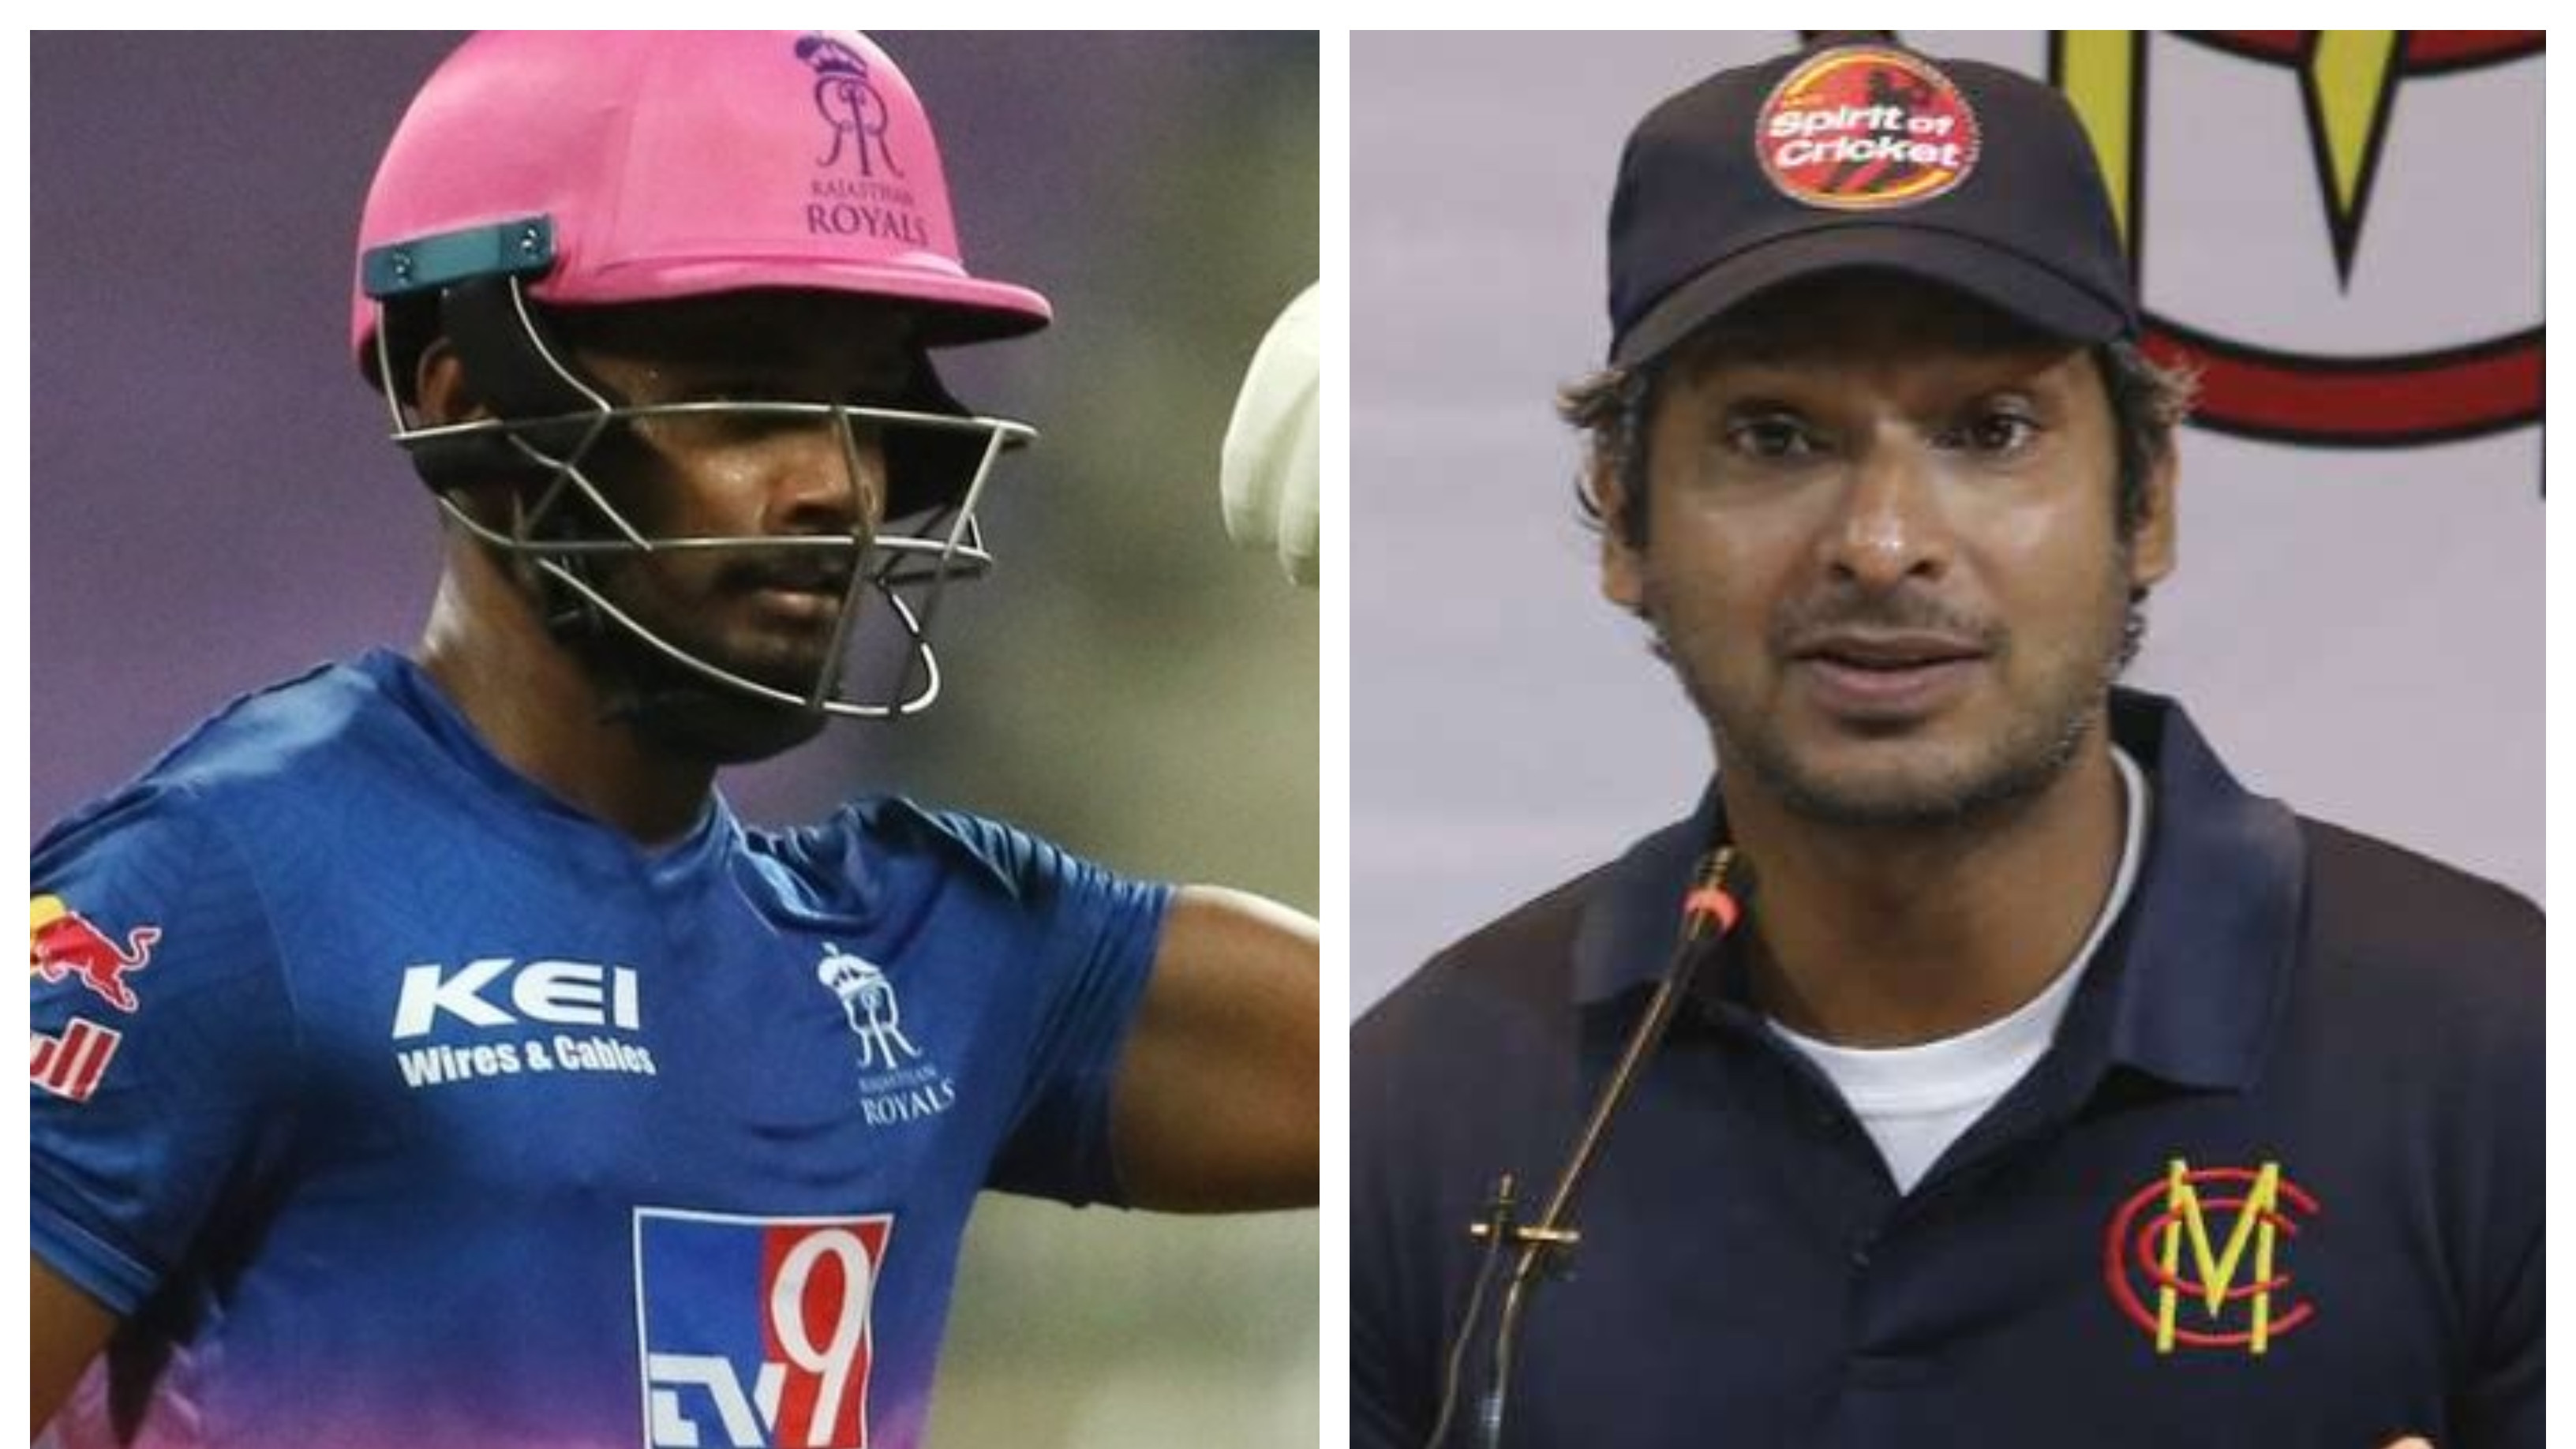 IPL 2021: 'The relationship is going to be really special', Samson excited to work alongside Sangakkara